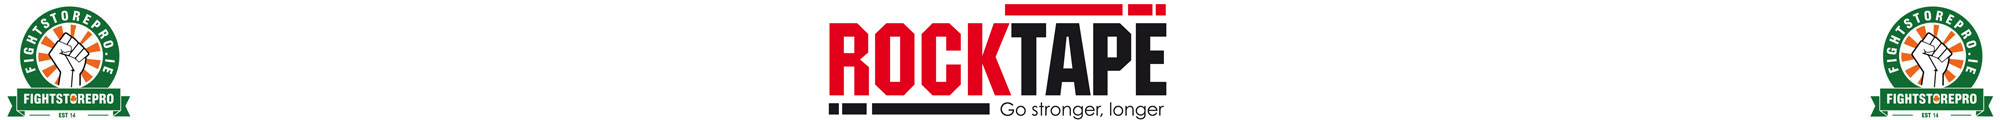 RockTape - Fightstore Ireland